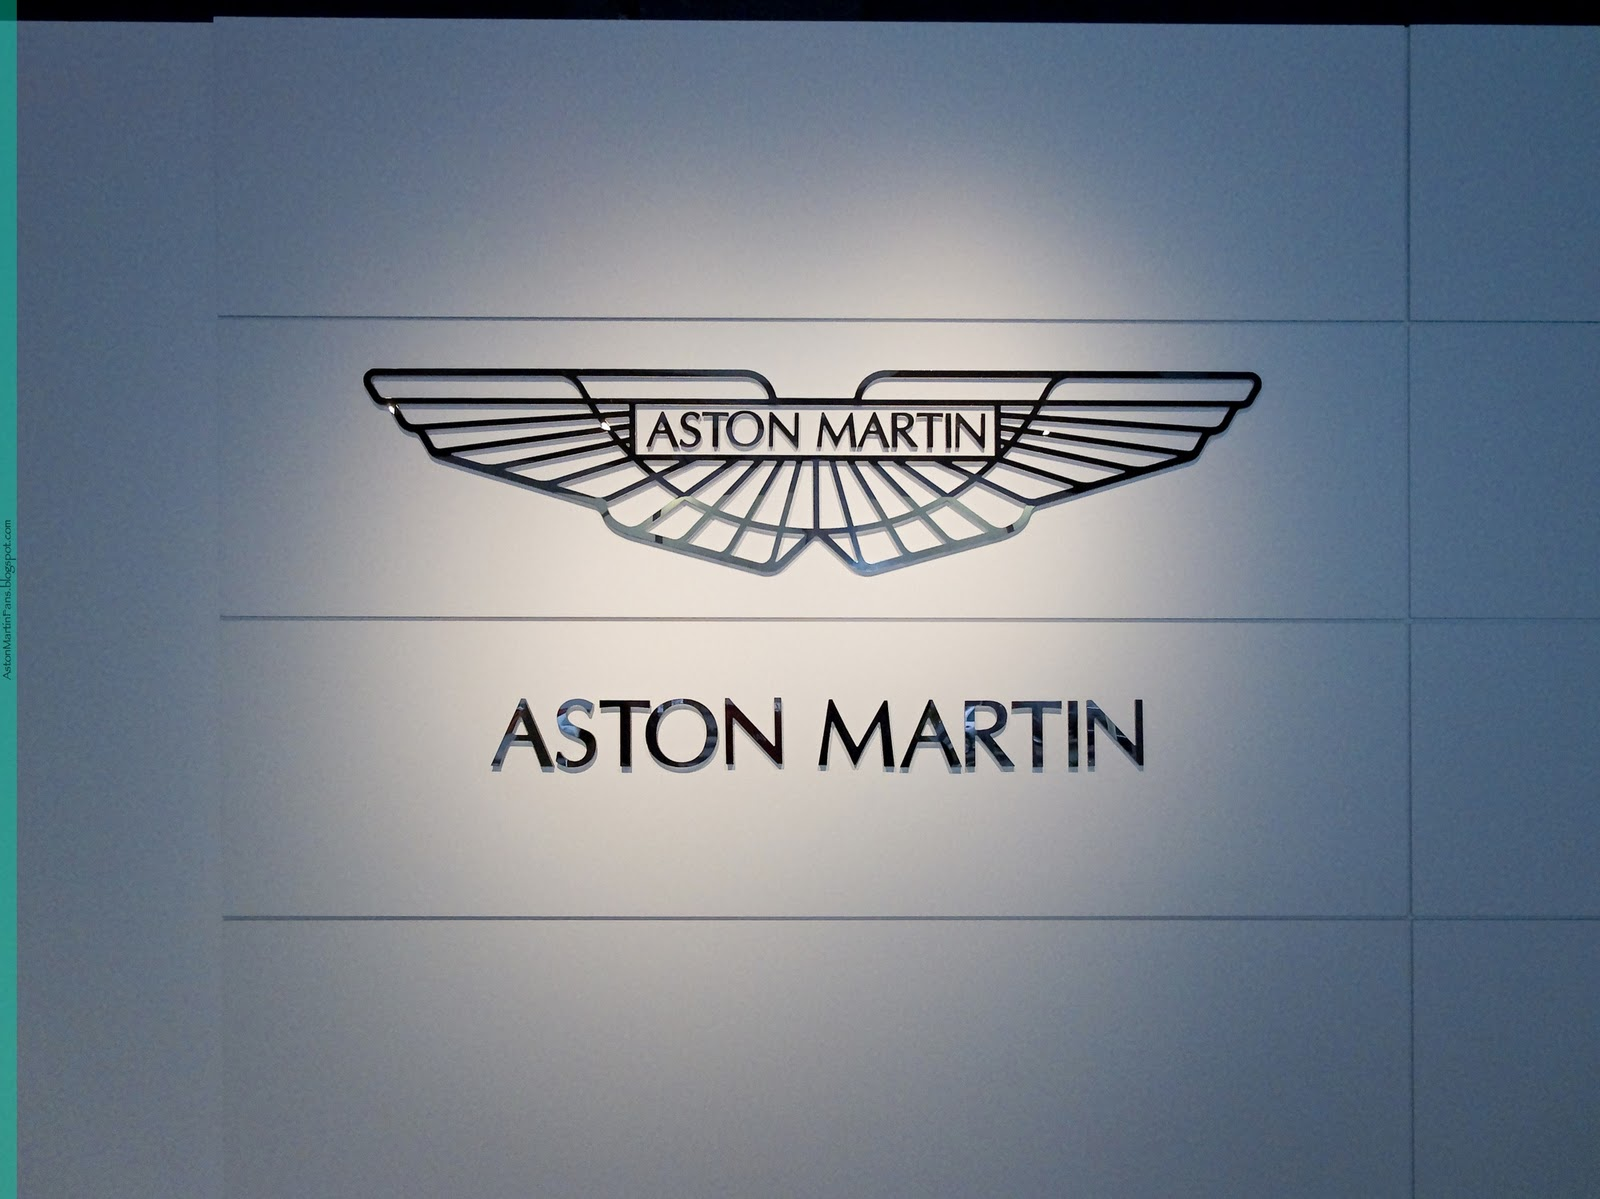 aston martin logo wallpapers 2014 Desktop Backgrounds for 1600x1199